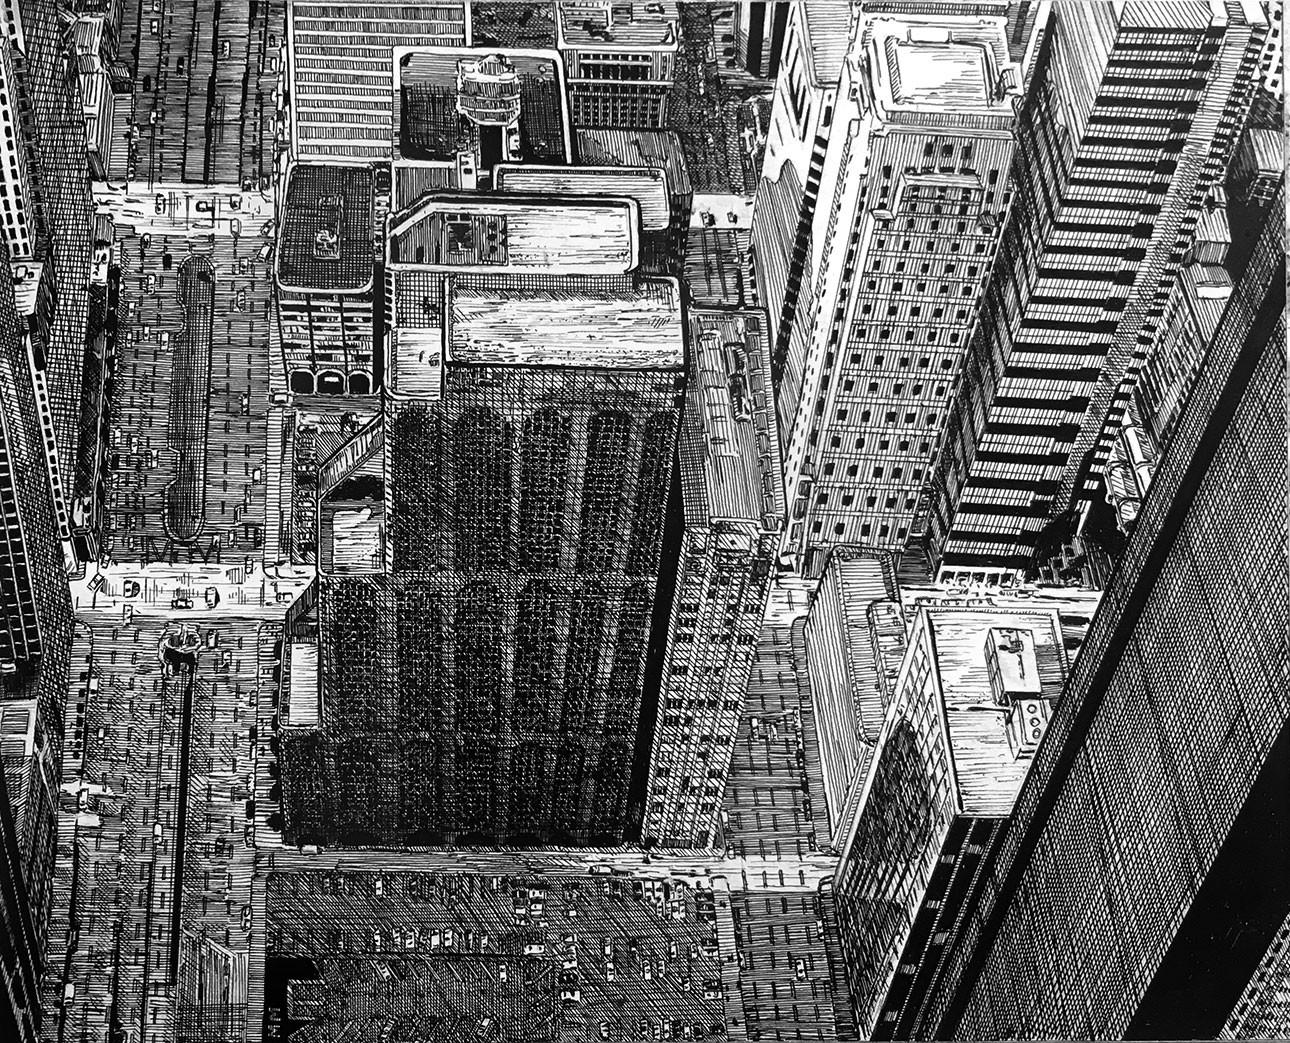 """8"""" x 10"""" pen and ink drawn from a photo I took on the Sears Tower (now Willis Tower) skydeck in Chicago."""